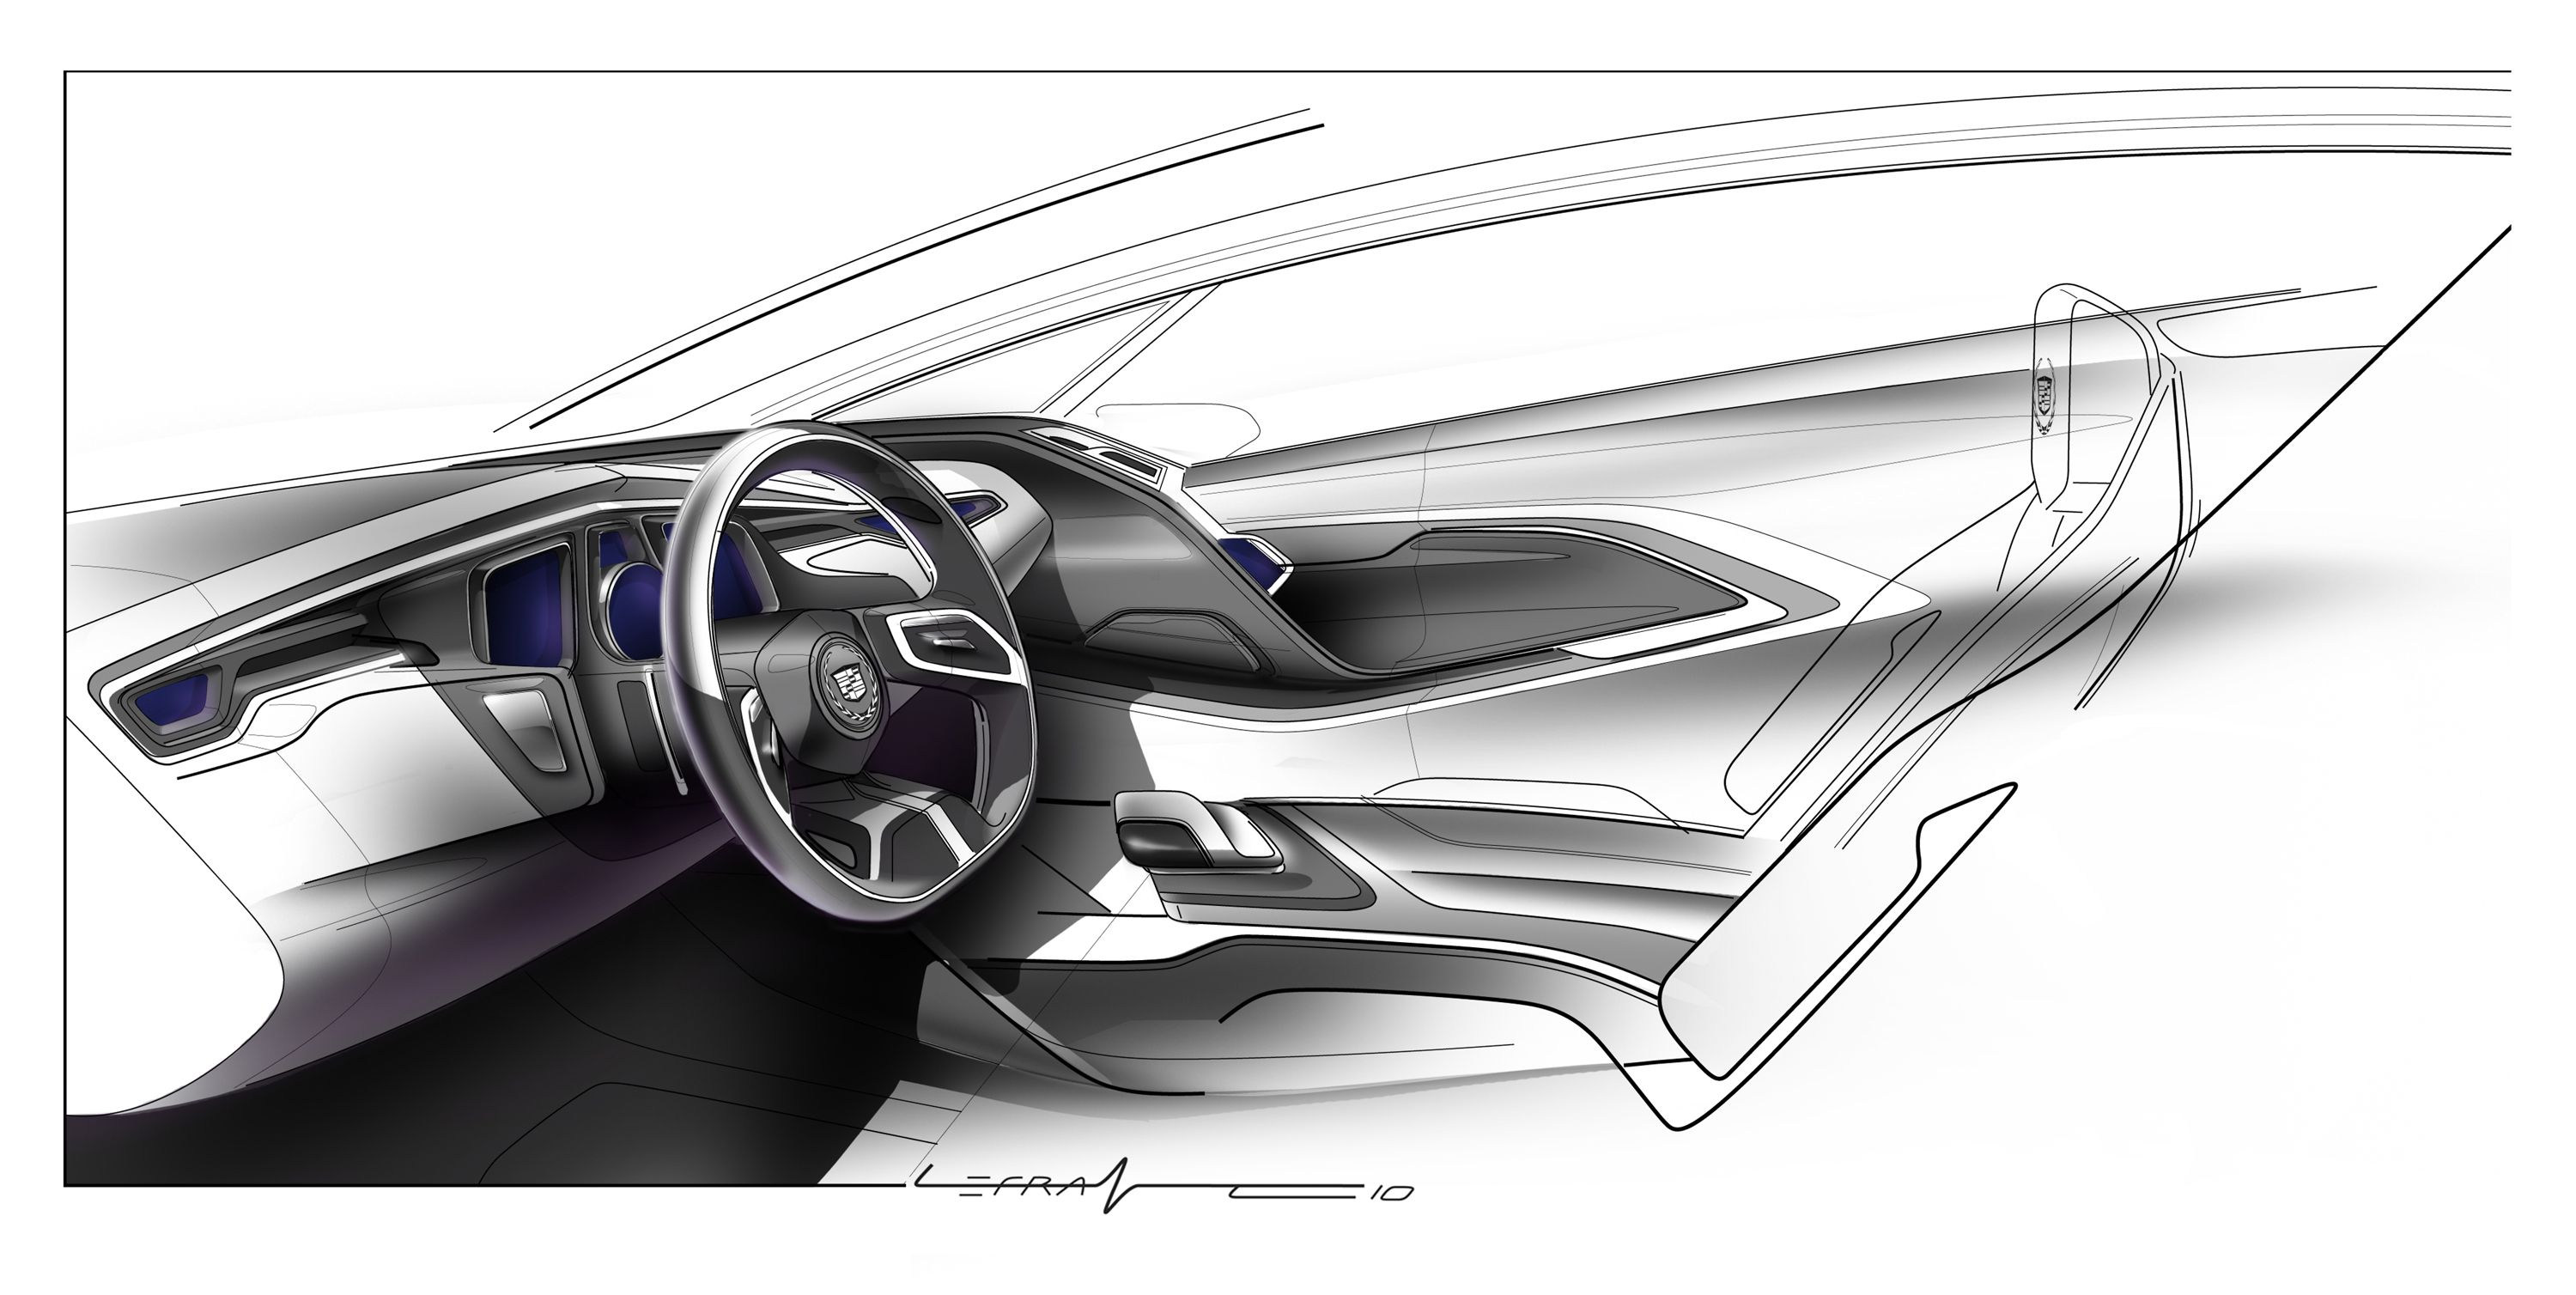 Cadillac Interior Sketch Sketchpiration Pinterest Interior